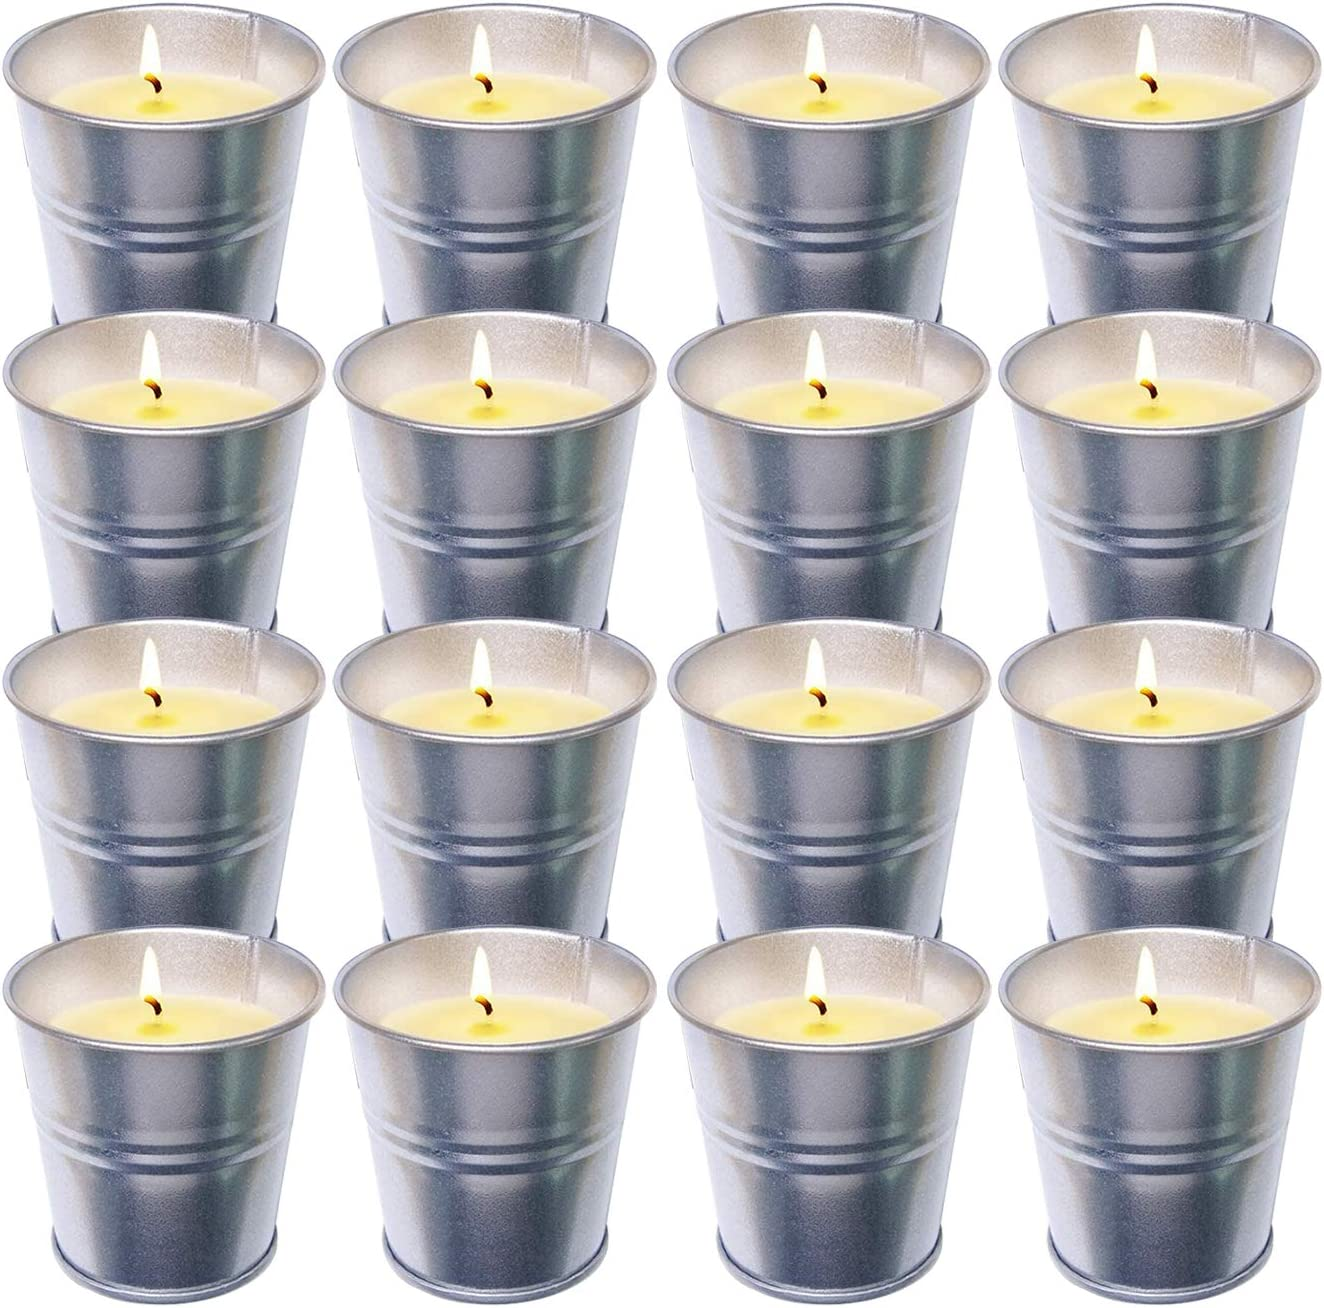 16 Packs Citronella Candles Outdoor Indoor, 16x 2 oz Outdoor Candles in Portable Travel Tin , 100% Natural Soy Wax Scented Candles for Patio/ Camping/ Garden/ Picnics, 15 Hours Burning